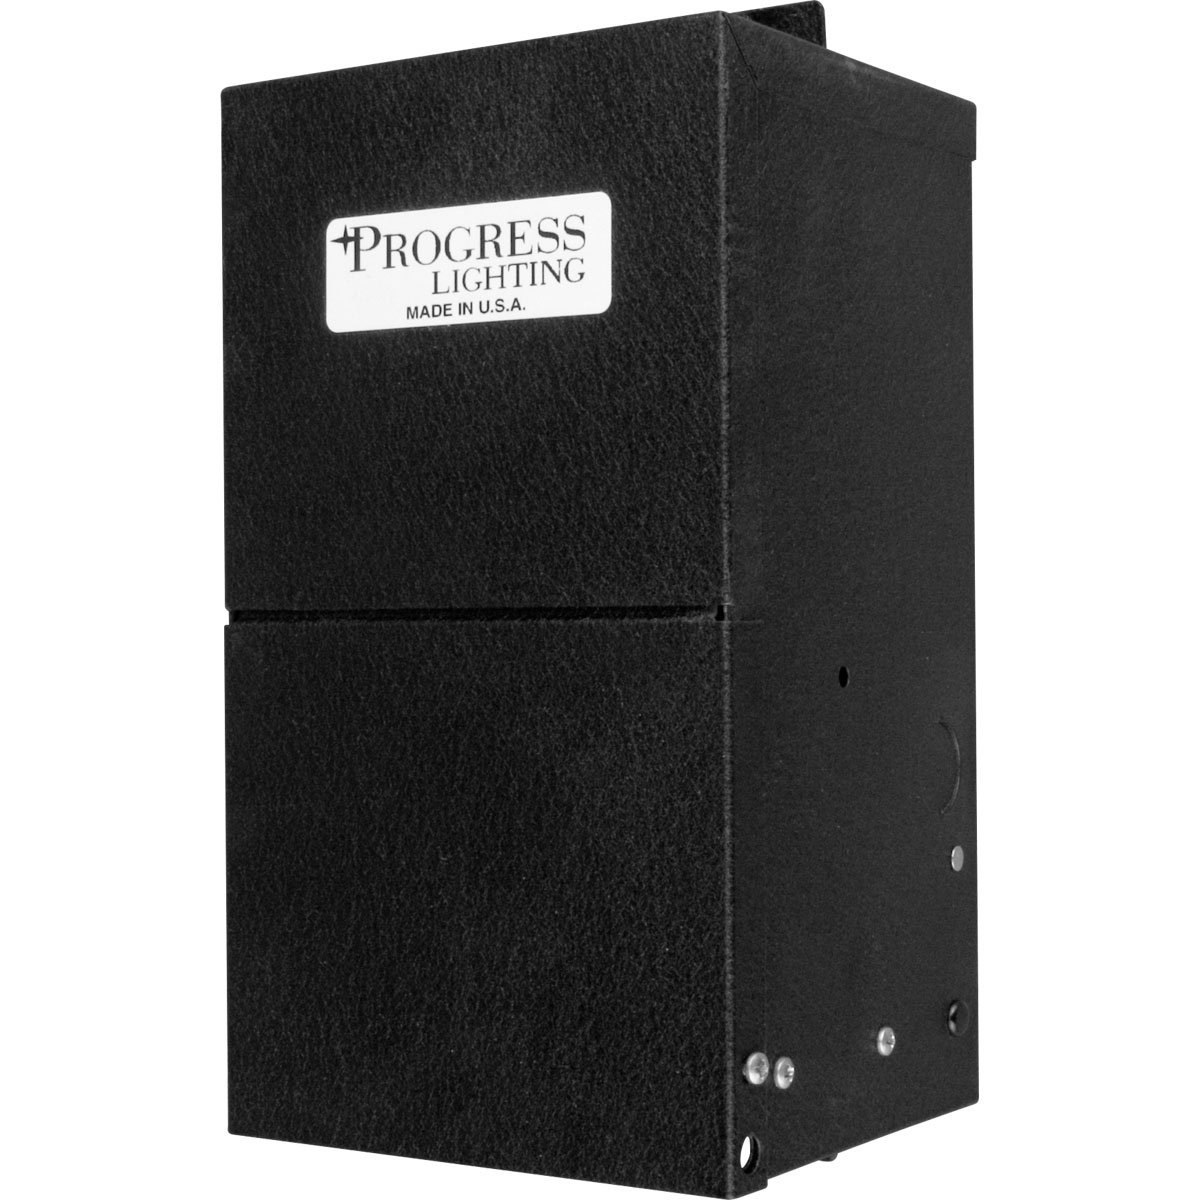 Progress Lighting P8655-31 15 Volt Transformer, Black by Progress Lighting